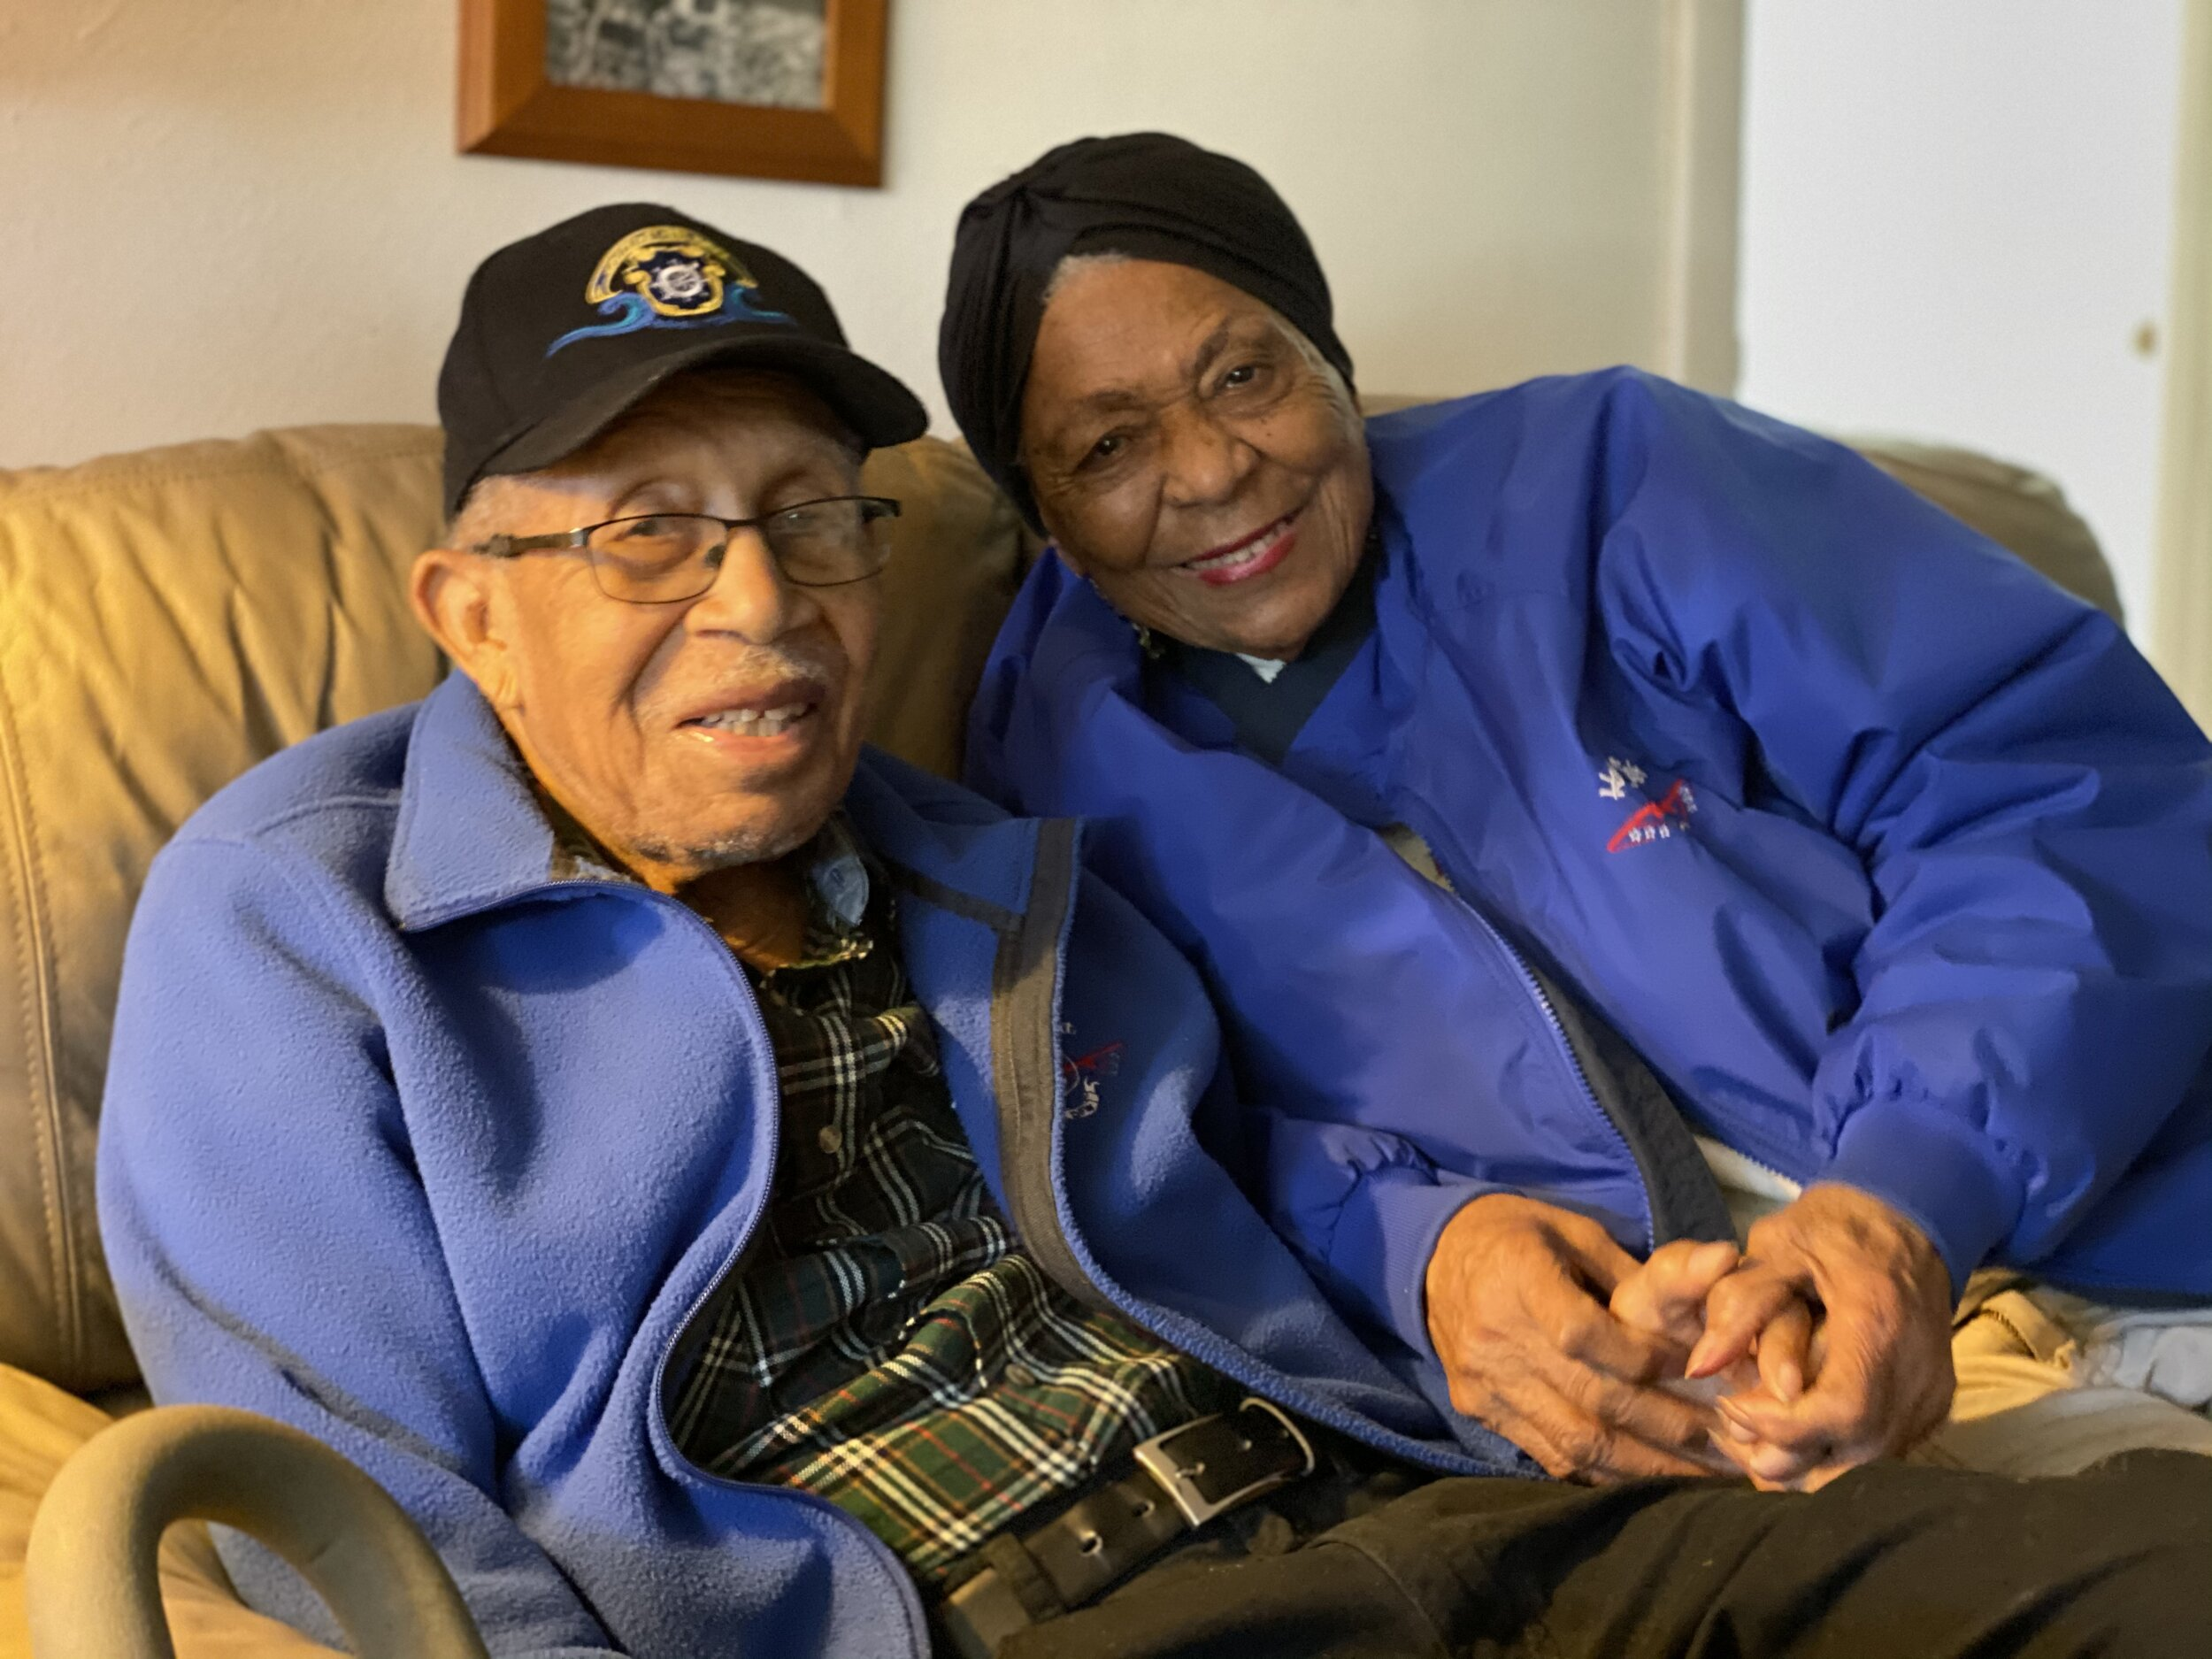 Curtis and Kelcy Smith are original homeowners in the community of Hamilton Park.